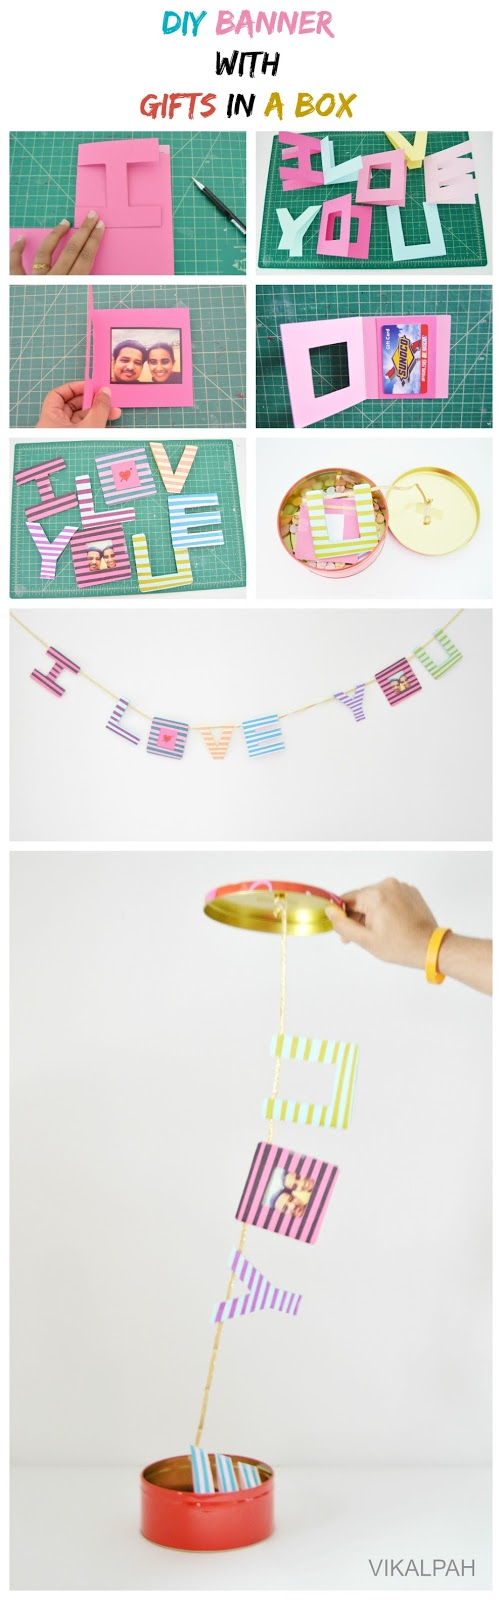 Easy DIY gift for Valentine's day, anniversary or birthdays